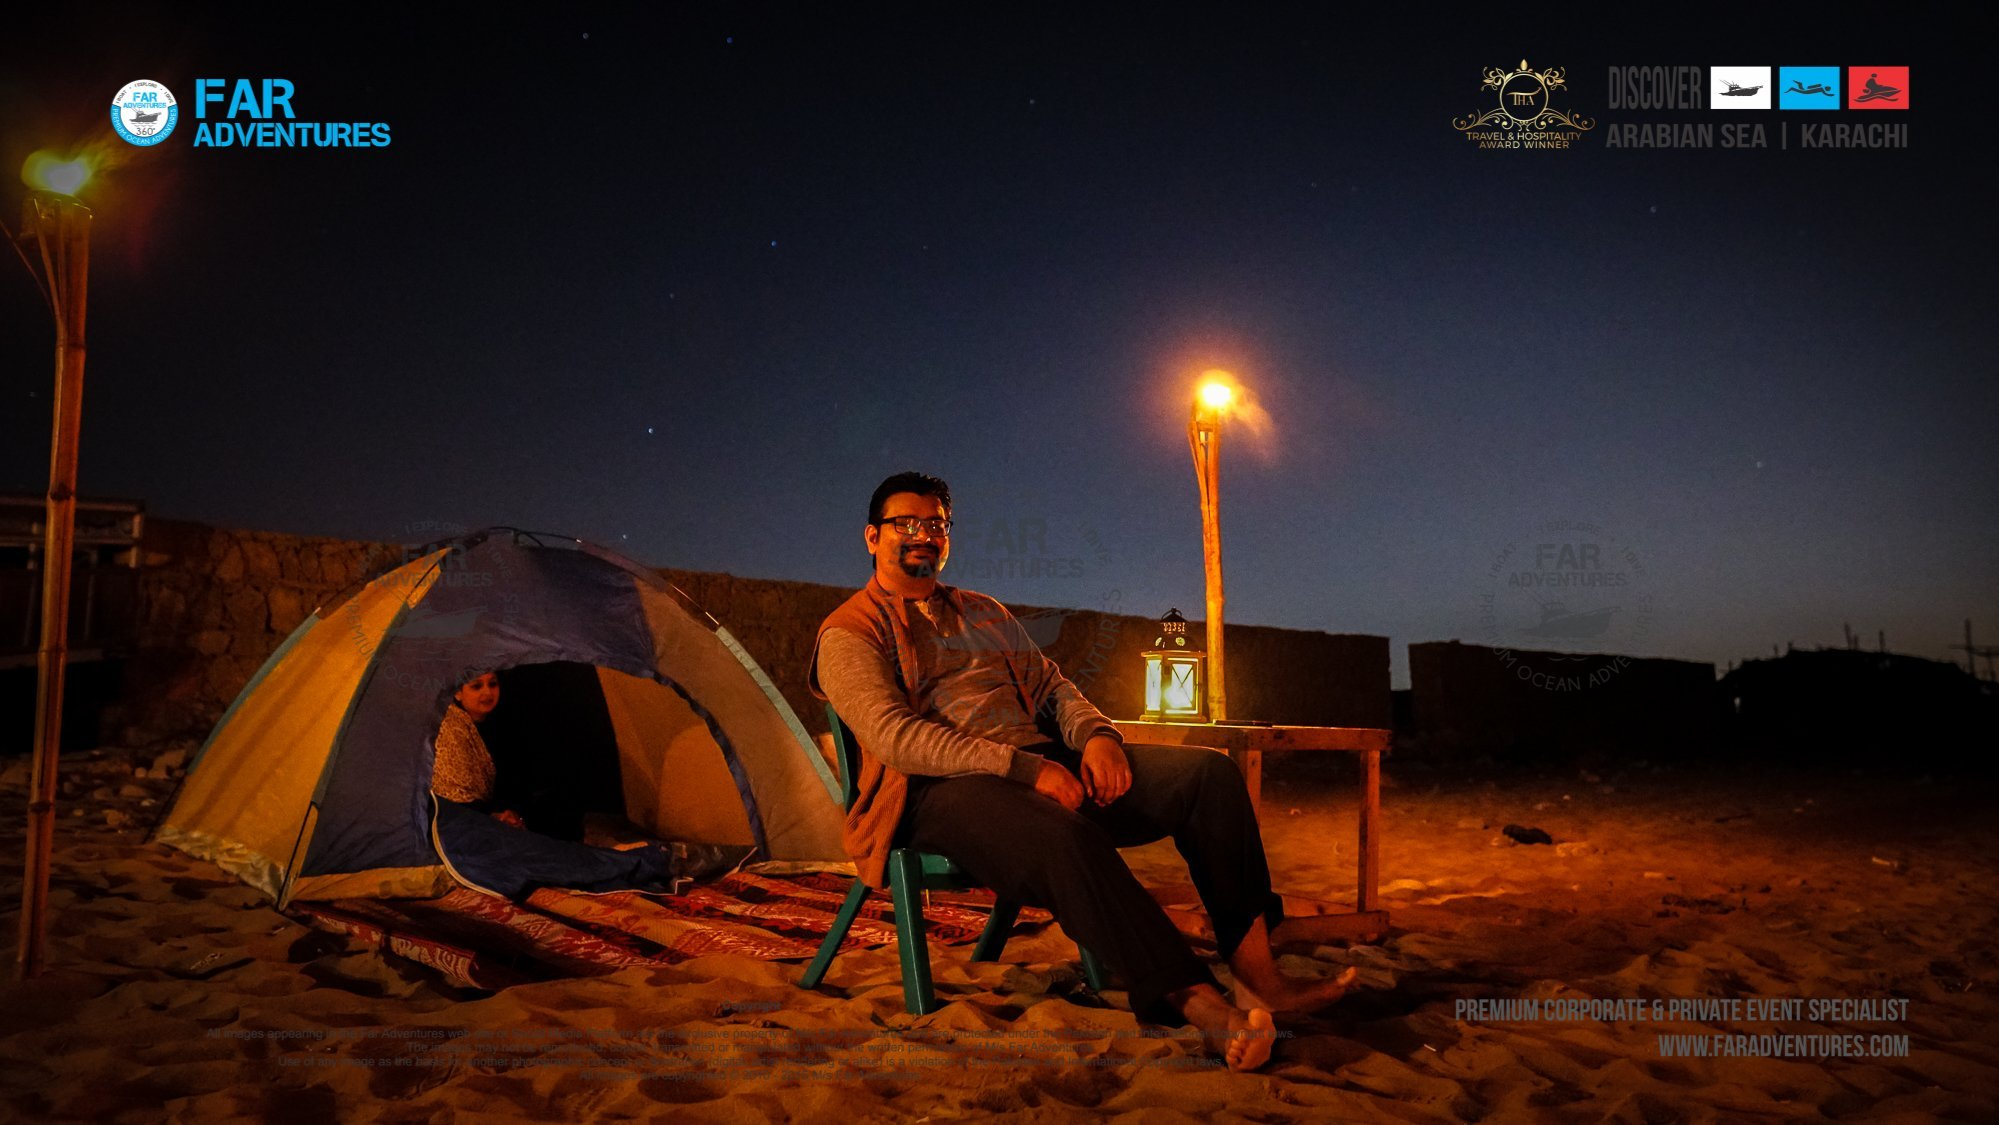 BEACH CAMPING & MOVIE NIGHT